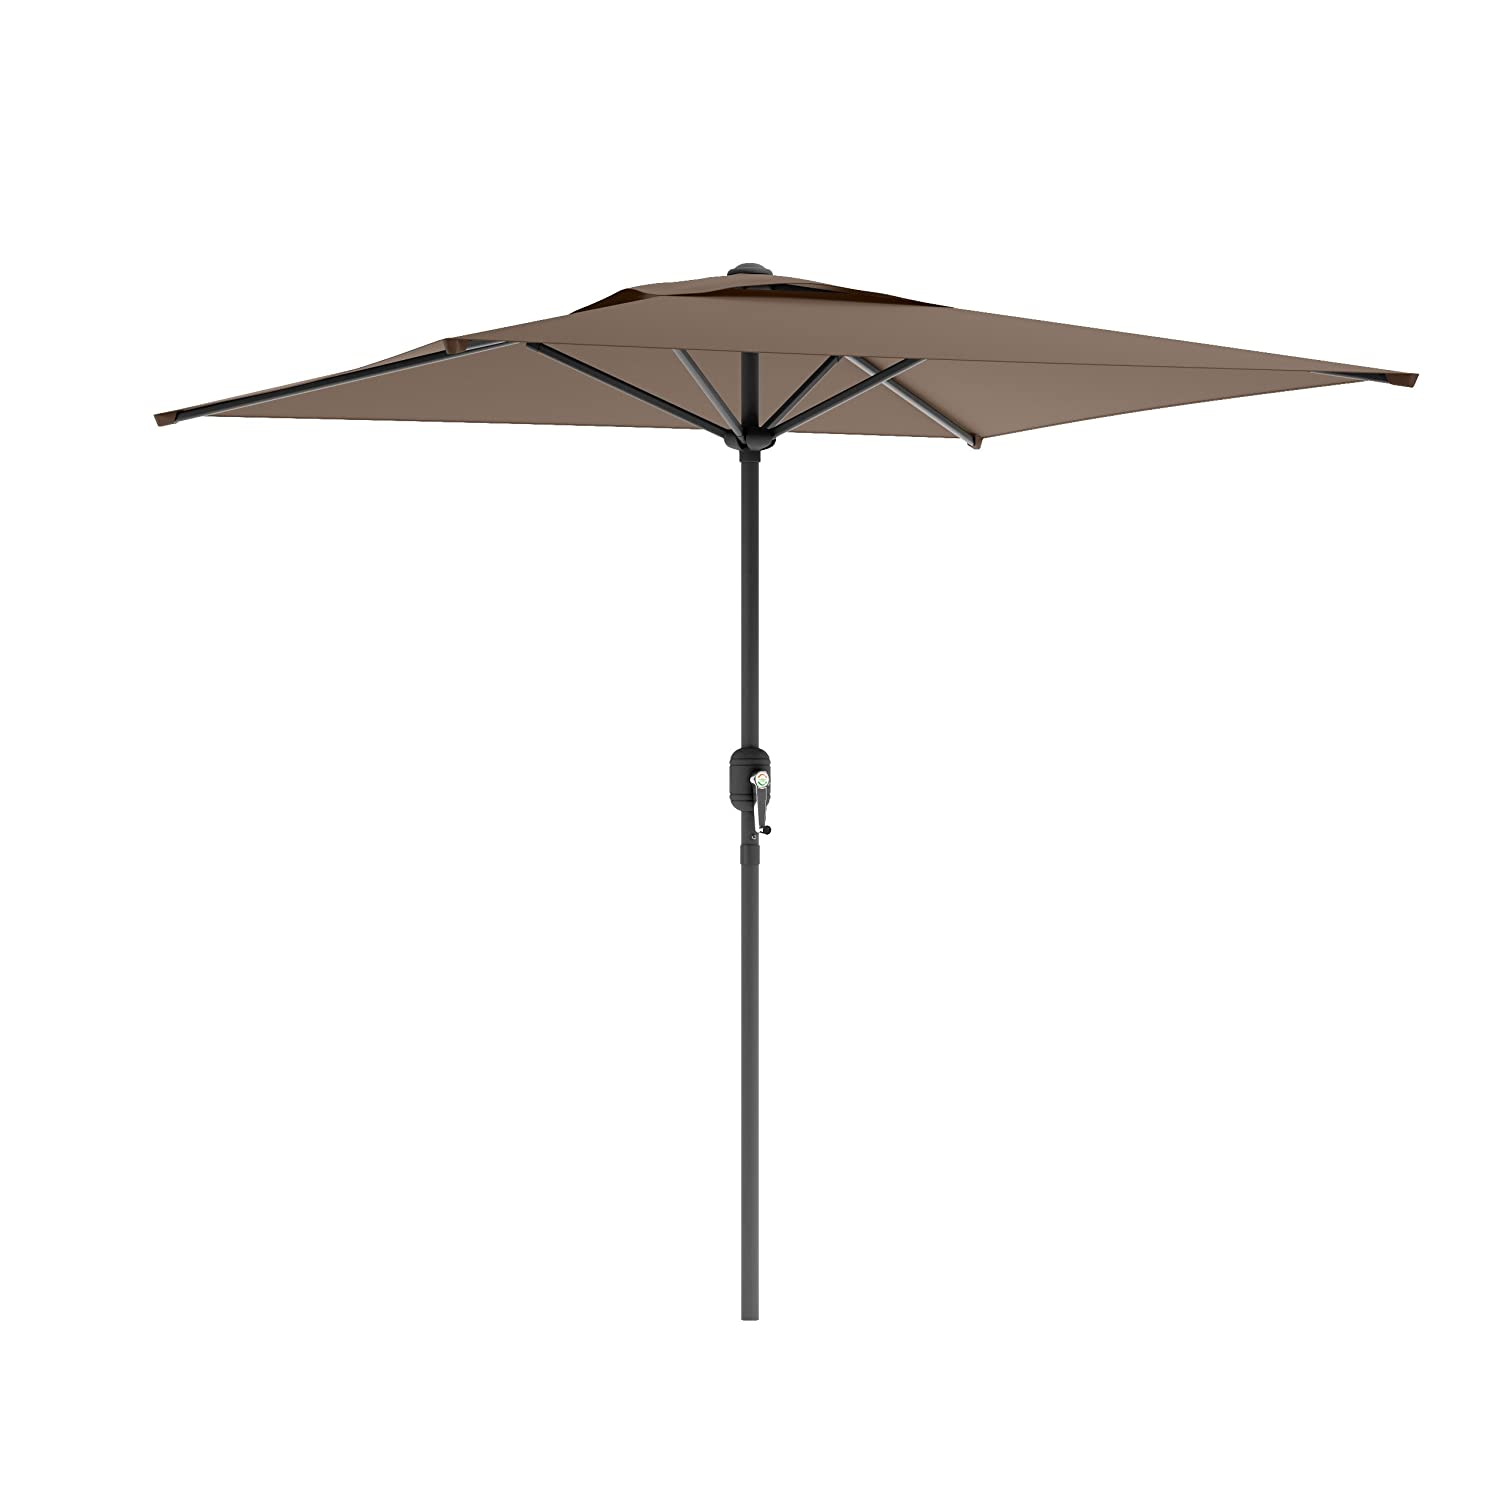 wheels patio granite iron wind base stand umbrellas planter amazing square elegant umbrella cast lowes pat furniture diy for with outdoor